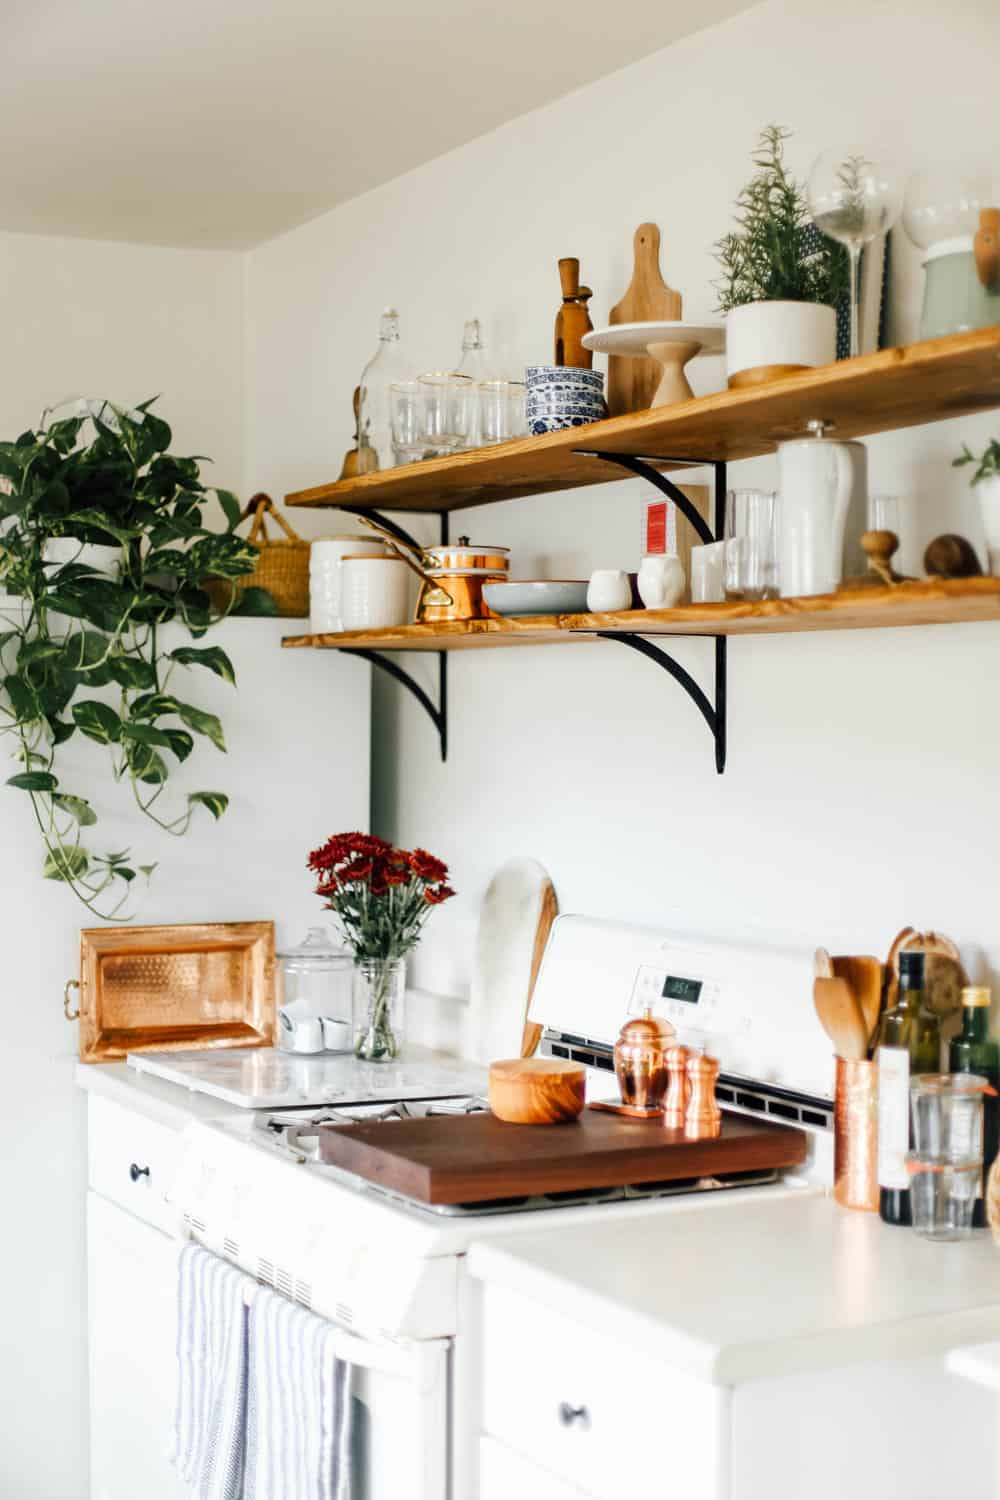 Open Kitchen Shelves For Under $100 - College Housewife